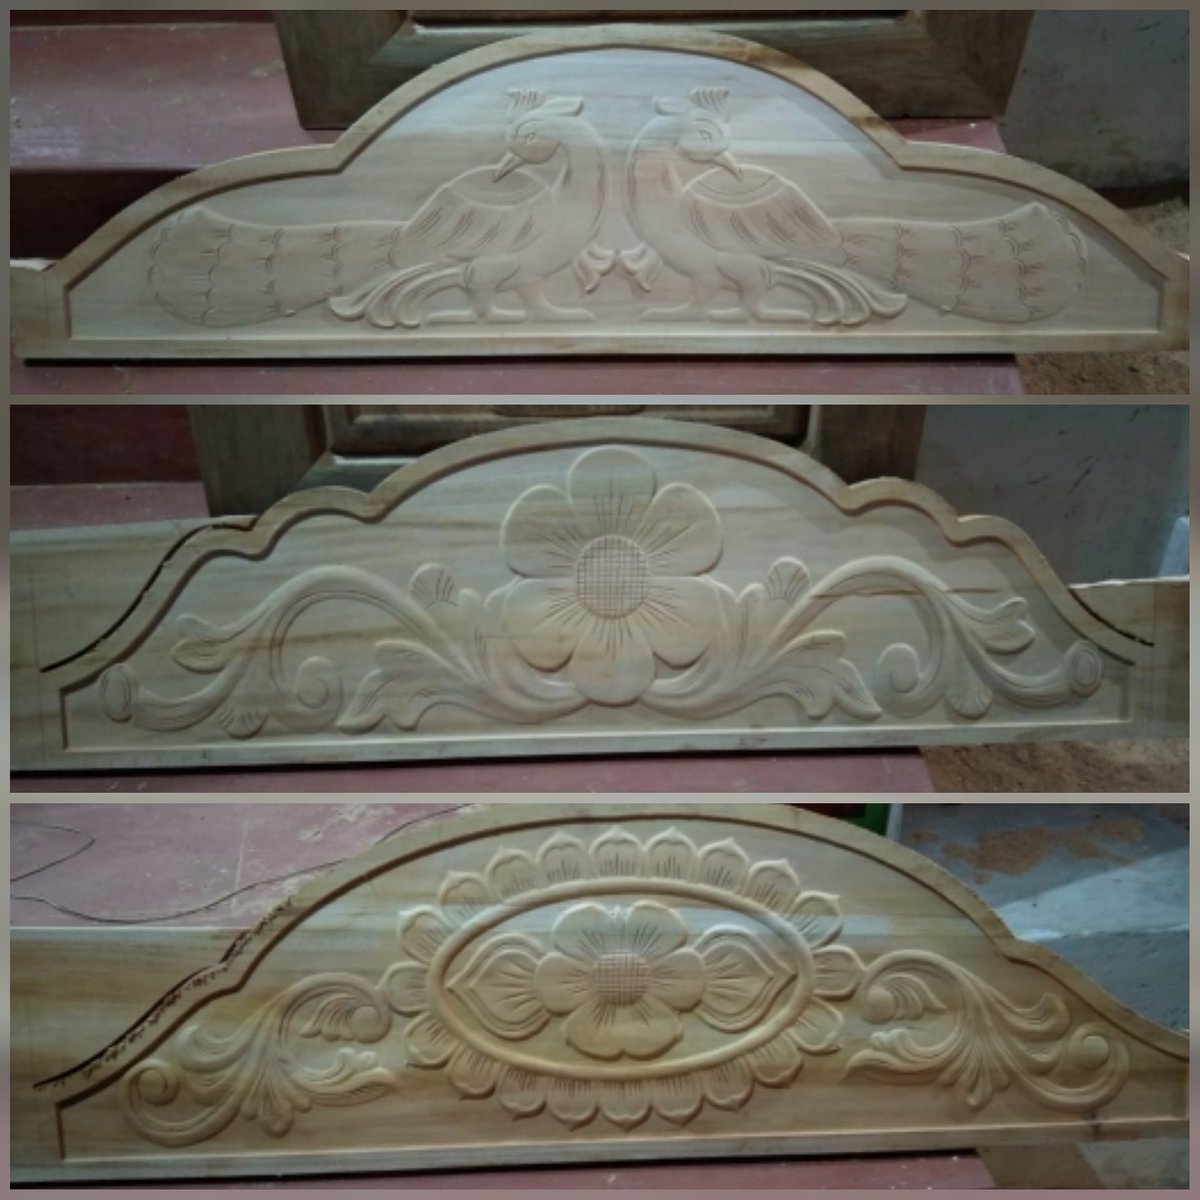 Pugazh Wood Carving Pa Twitter Bed Headboard Carving Pugazhwood Pugazhwood Pugazhwood Woodworking Woodcarving Woodworker Woodcraft Carvings Woodart Wooddesign Architecture Wooden Carvingwood Carvingdoor Carvingart Carvingskills